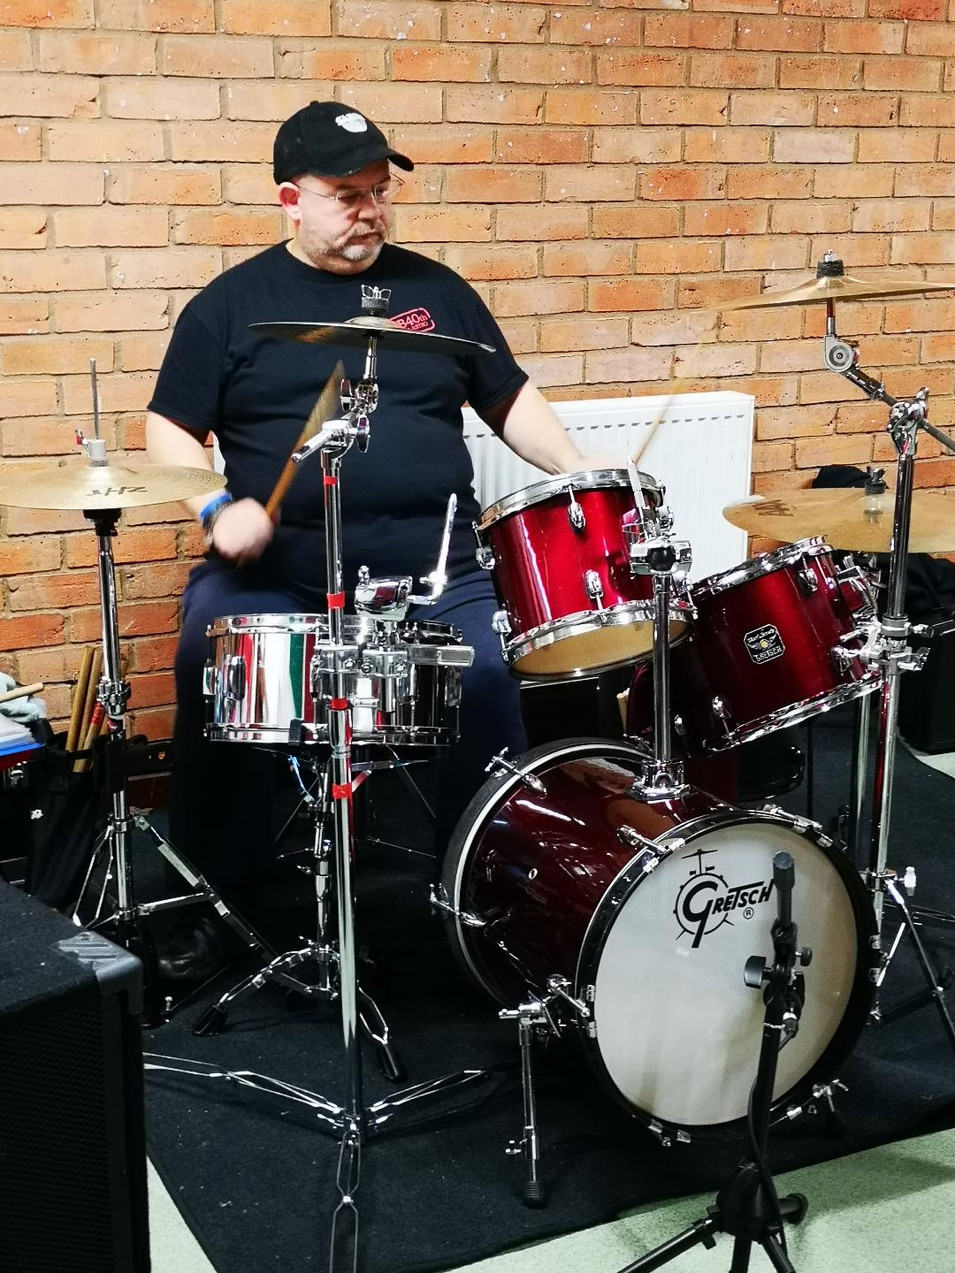 Jazz kit in action